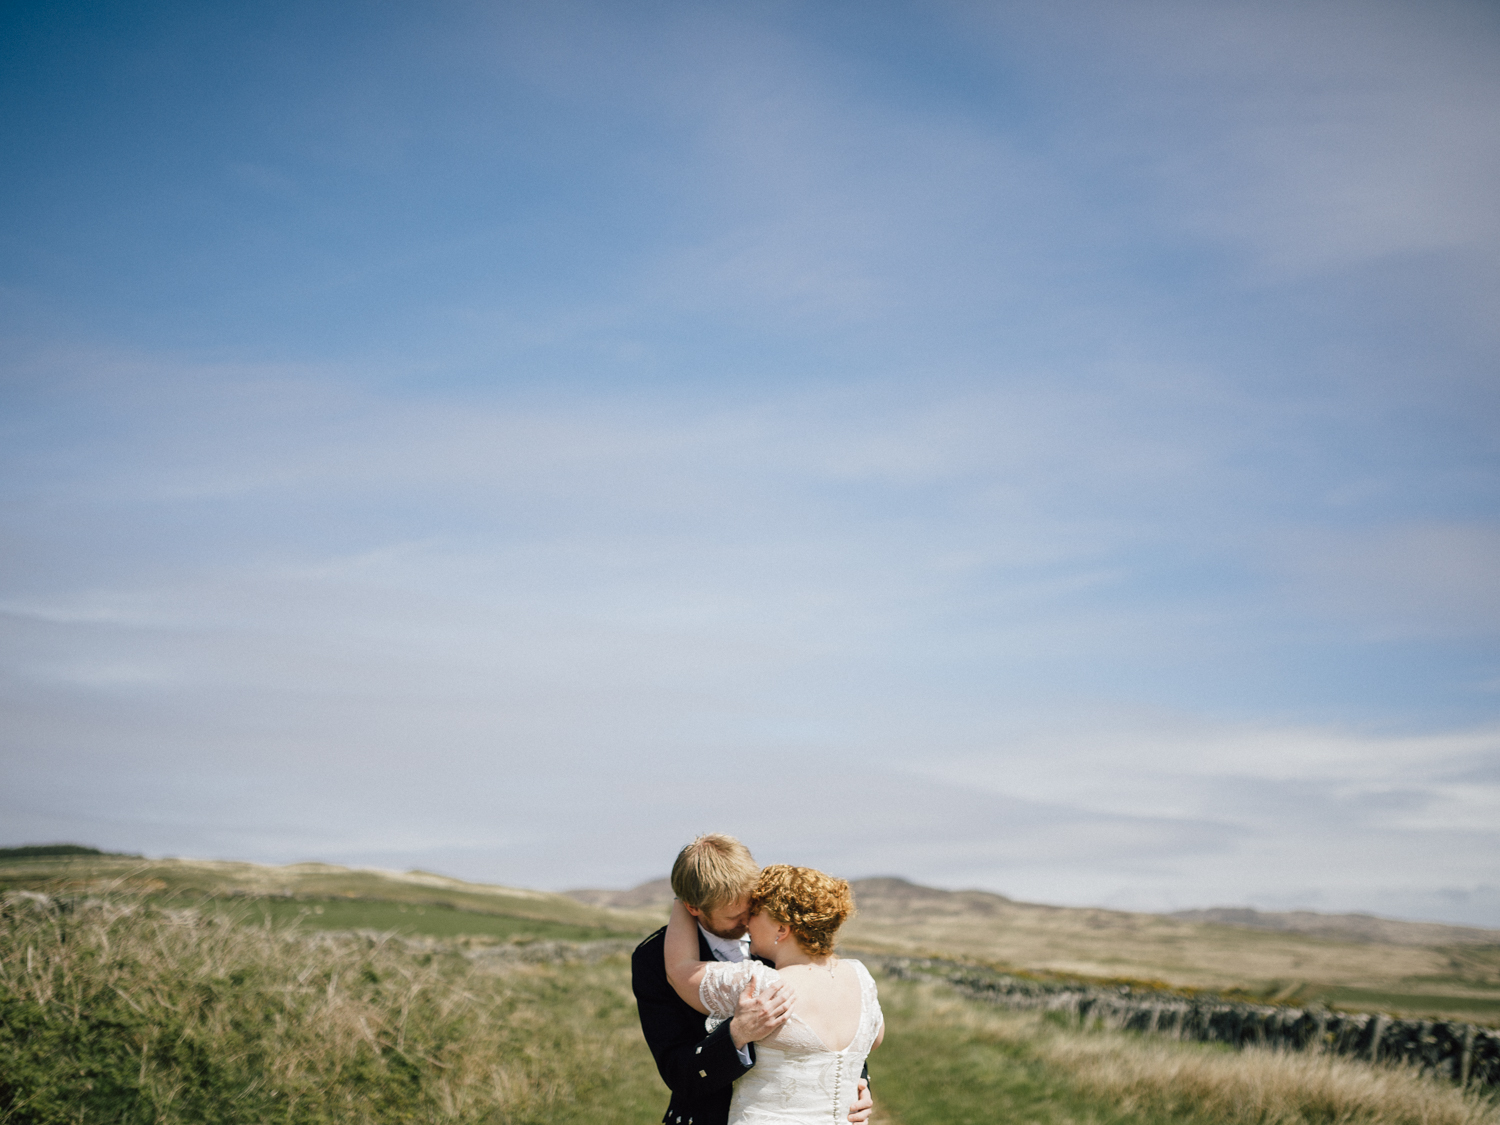 capyture-wedding-photographer-destination-crear-scotland-176